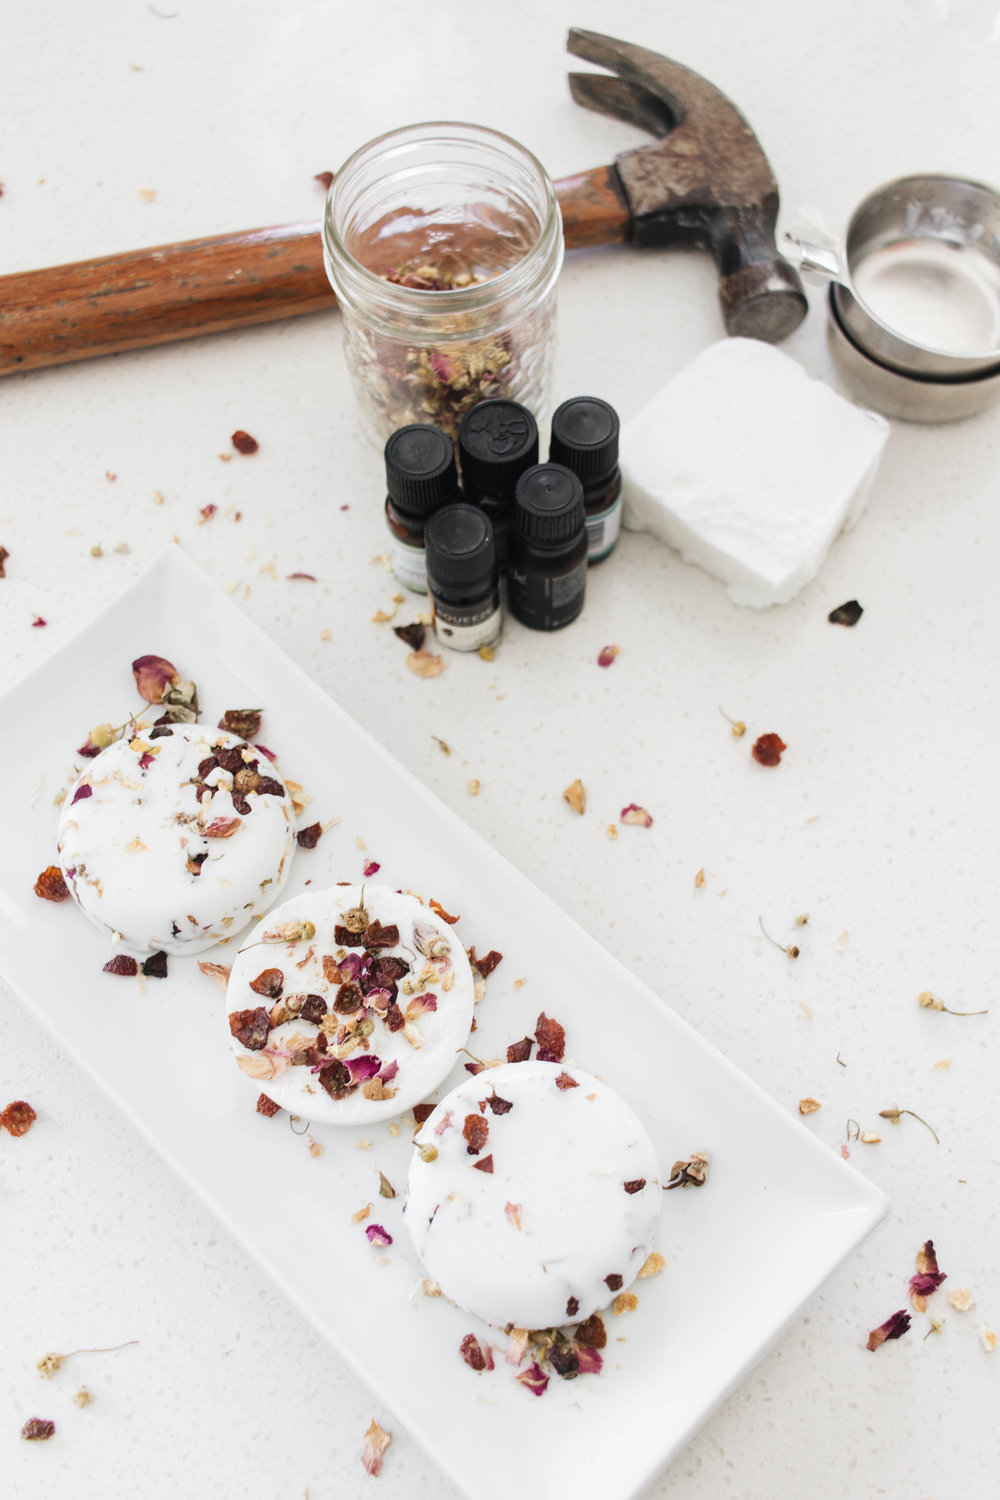 diy-soap-with-essential-oils-dried-flowers-2.jpg